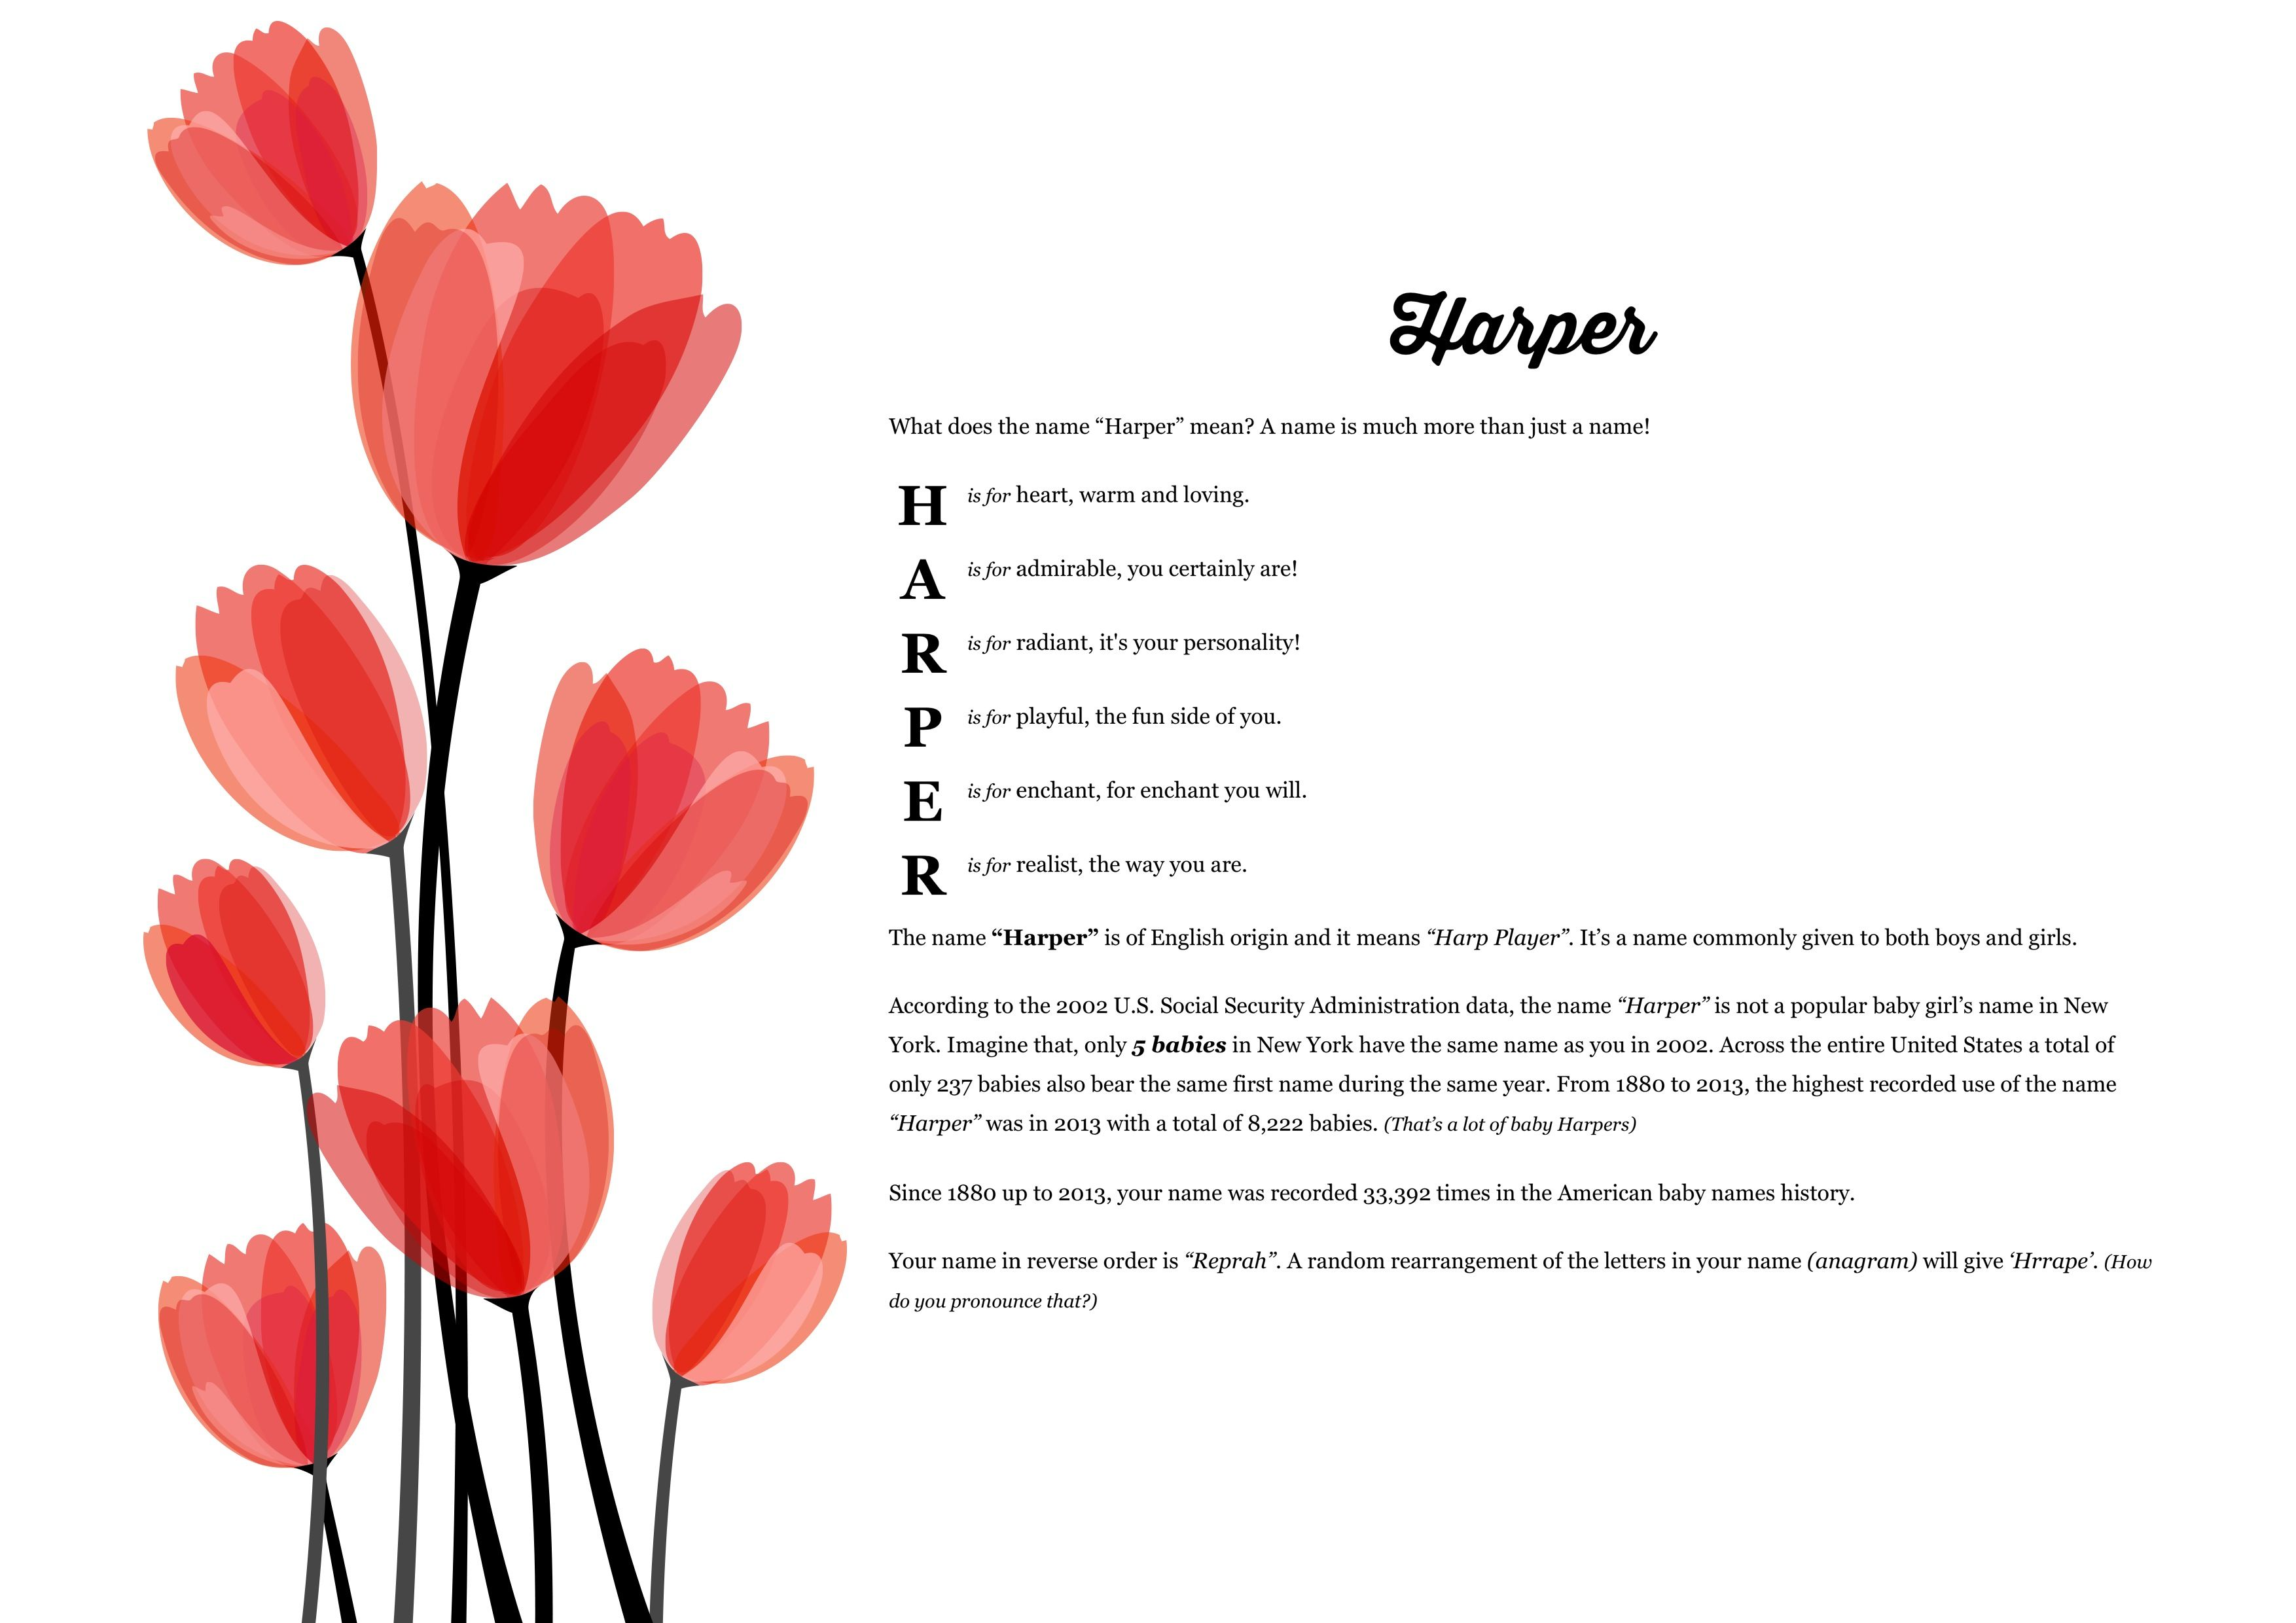 The namemeaning of harper using red flowers from the project pack the namemeaning of harper using red flowers from the project pack flowers unique giftideas and personalizedgifts for babynames izmirmasajfo